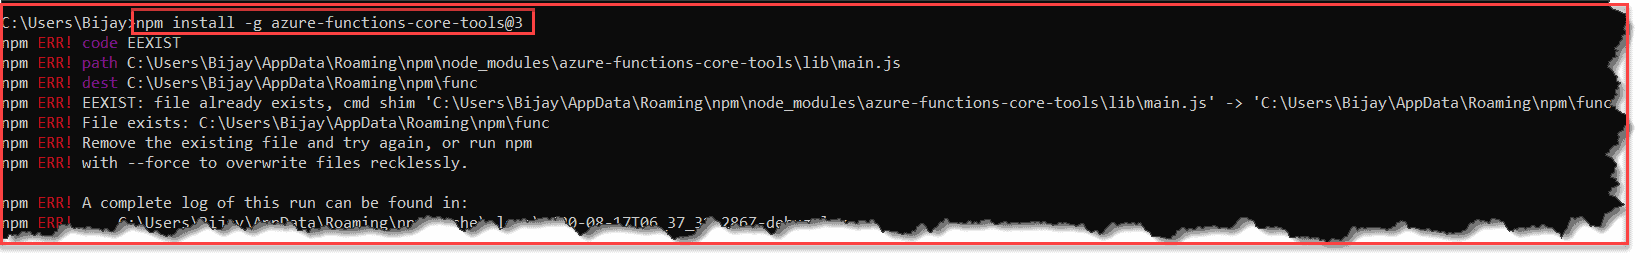 Azure Function Core Tool Not Installing on VS Code